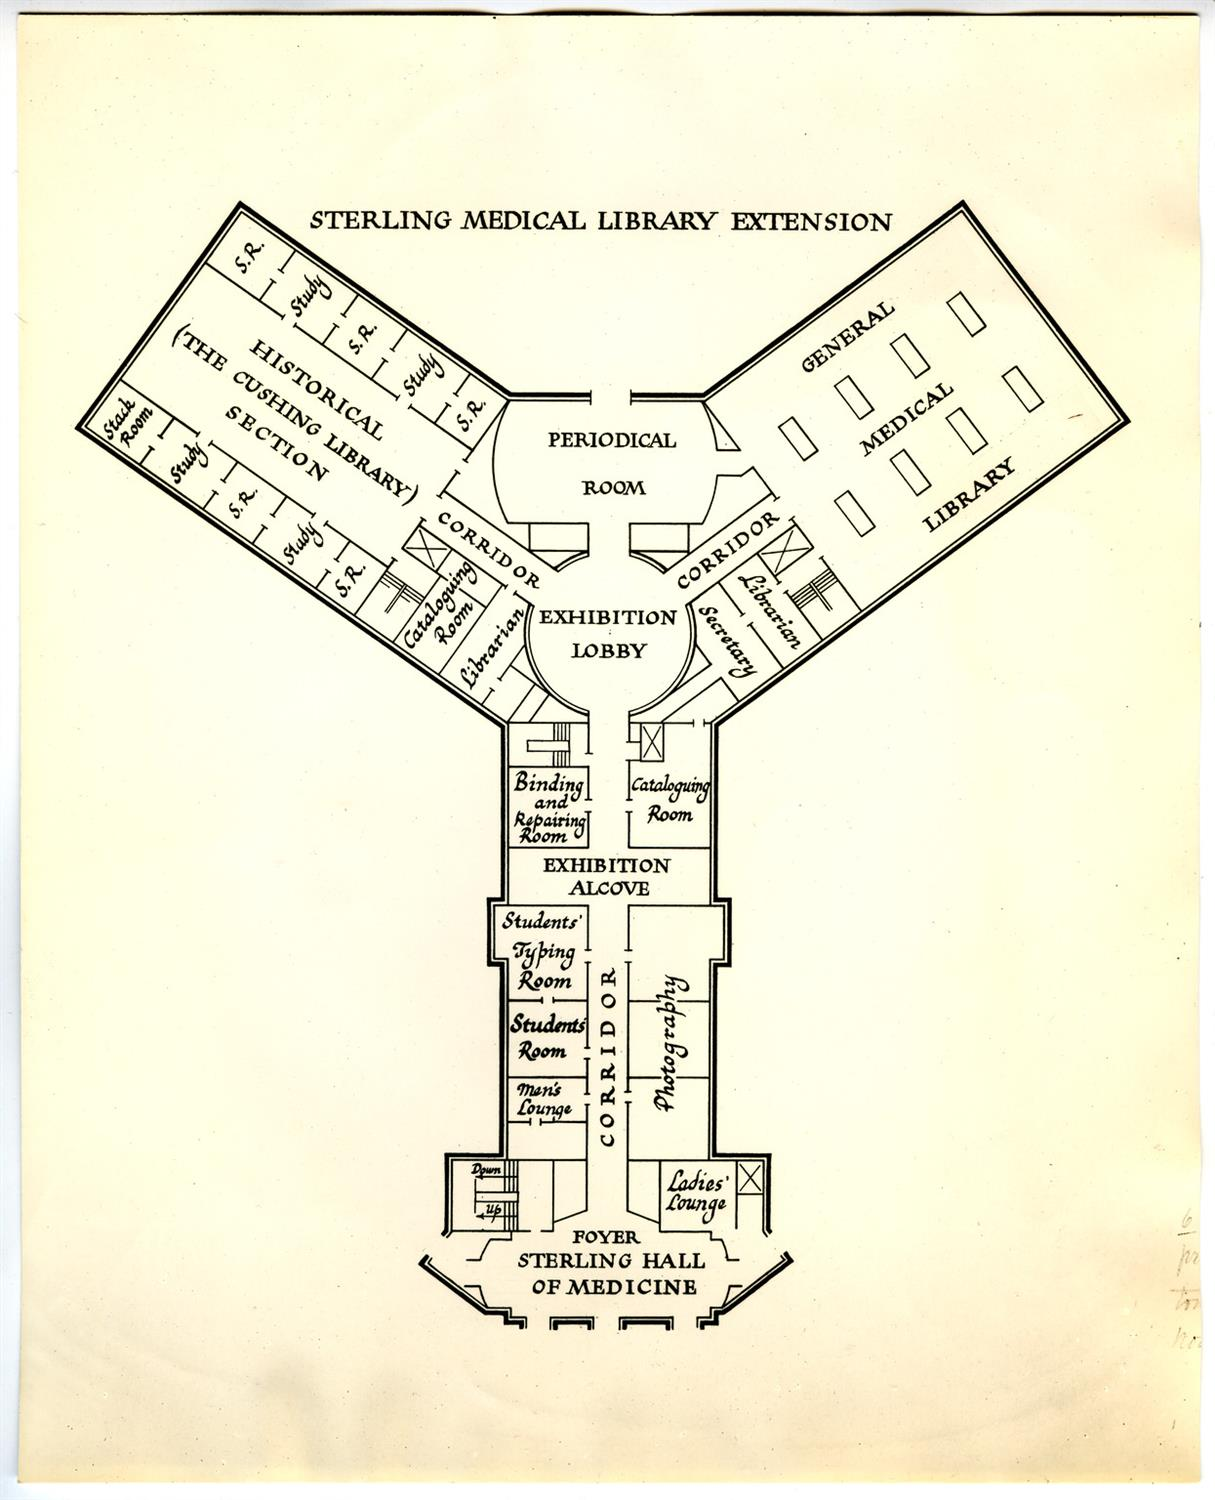 Original Medical library floorplan